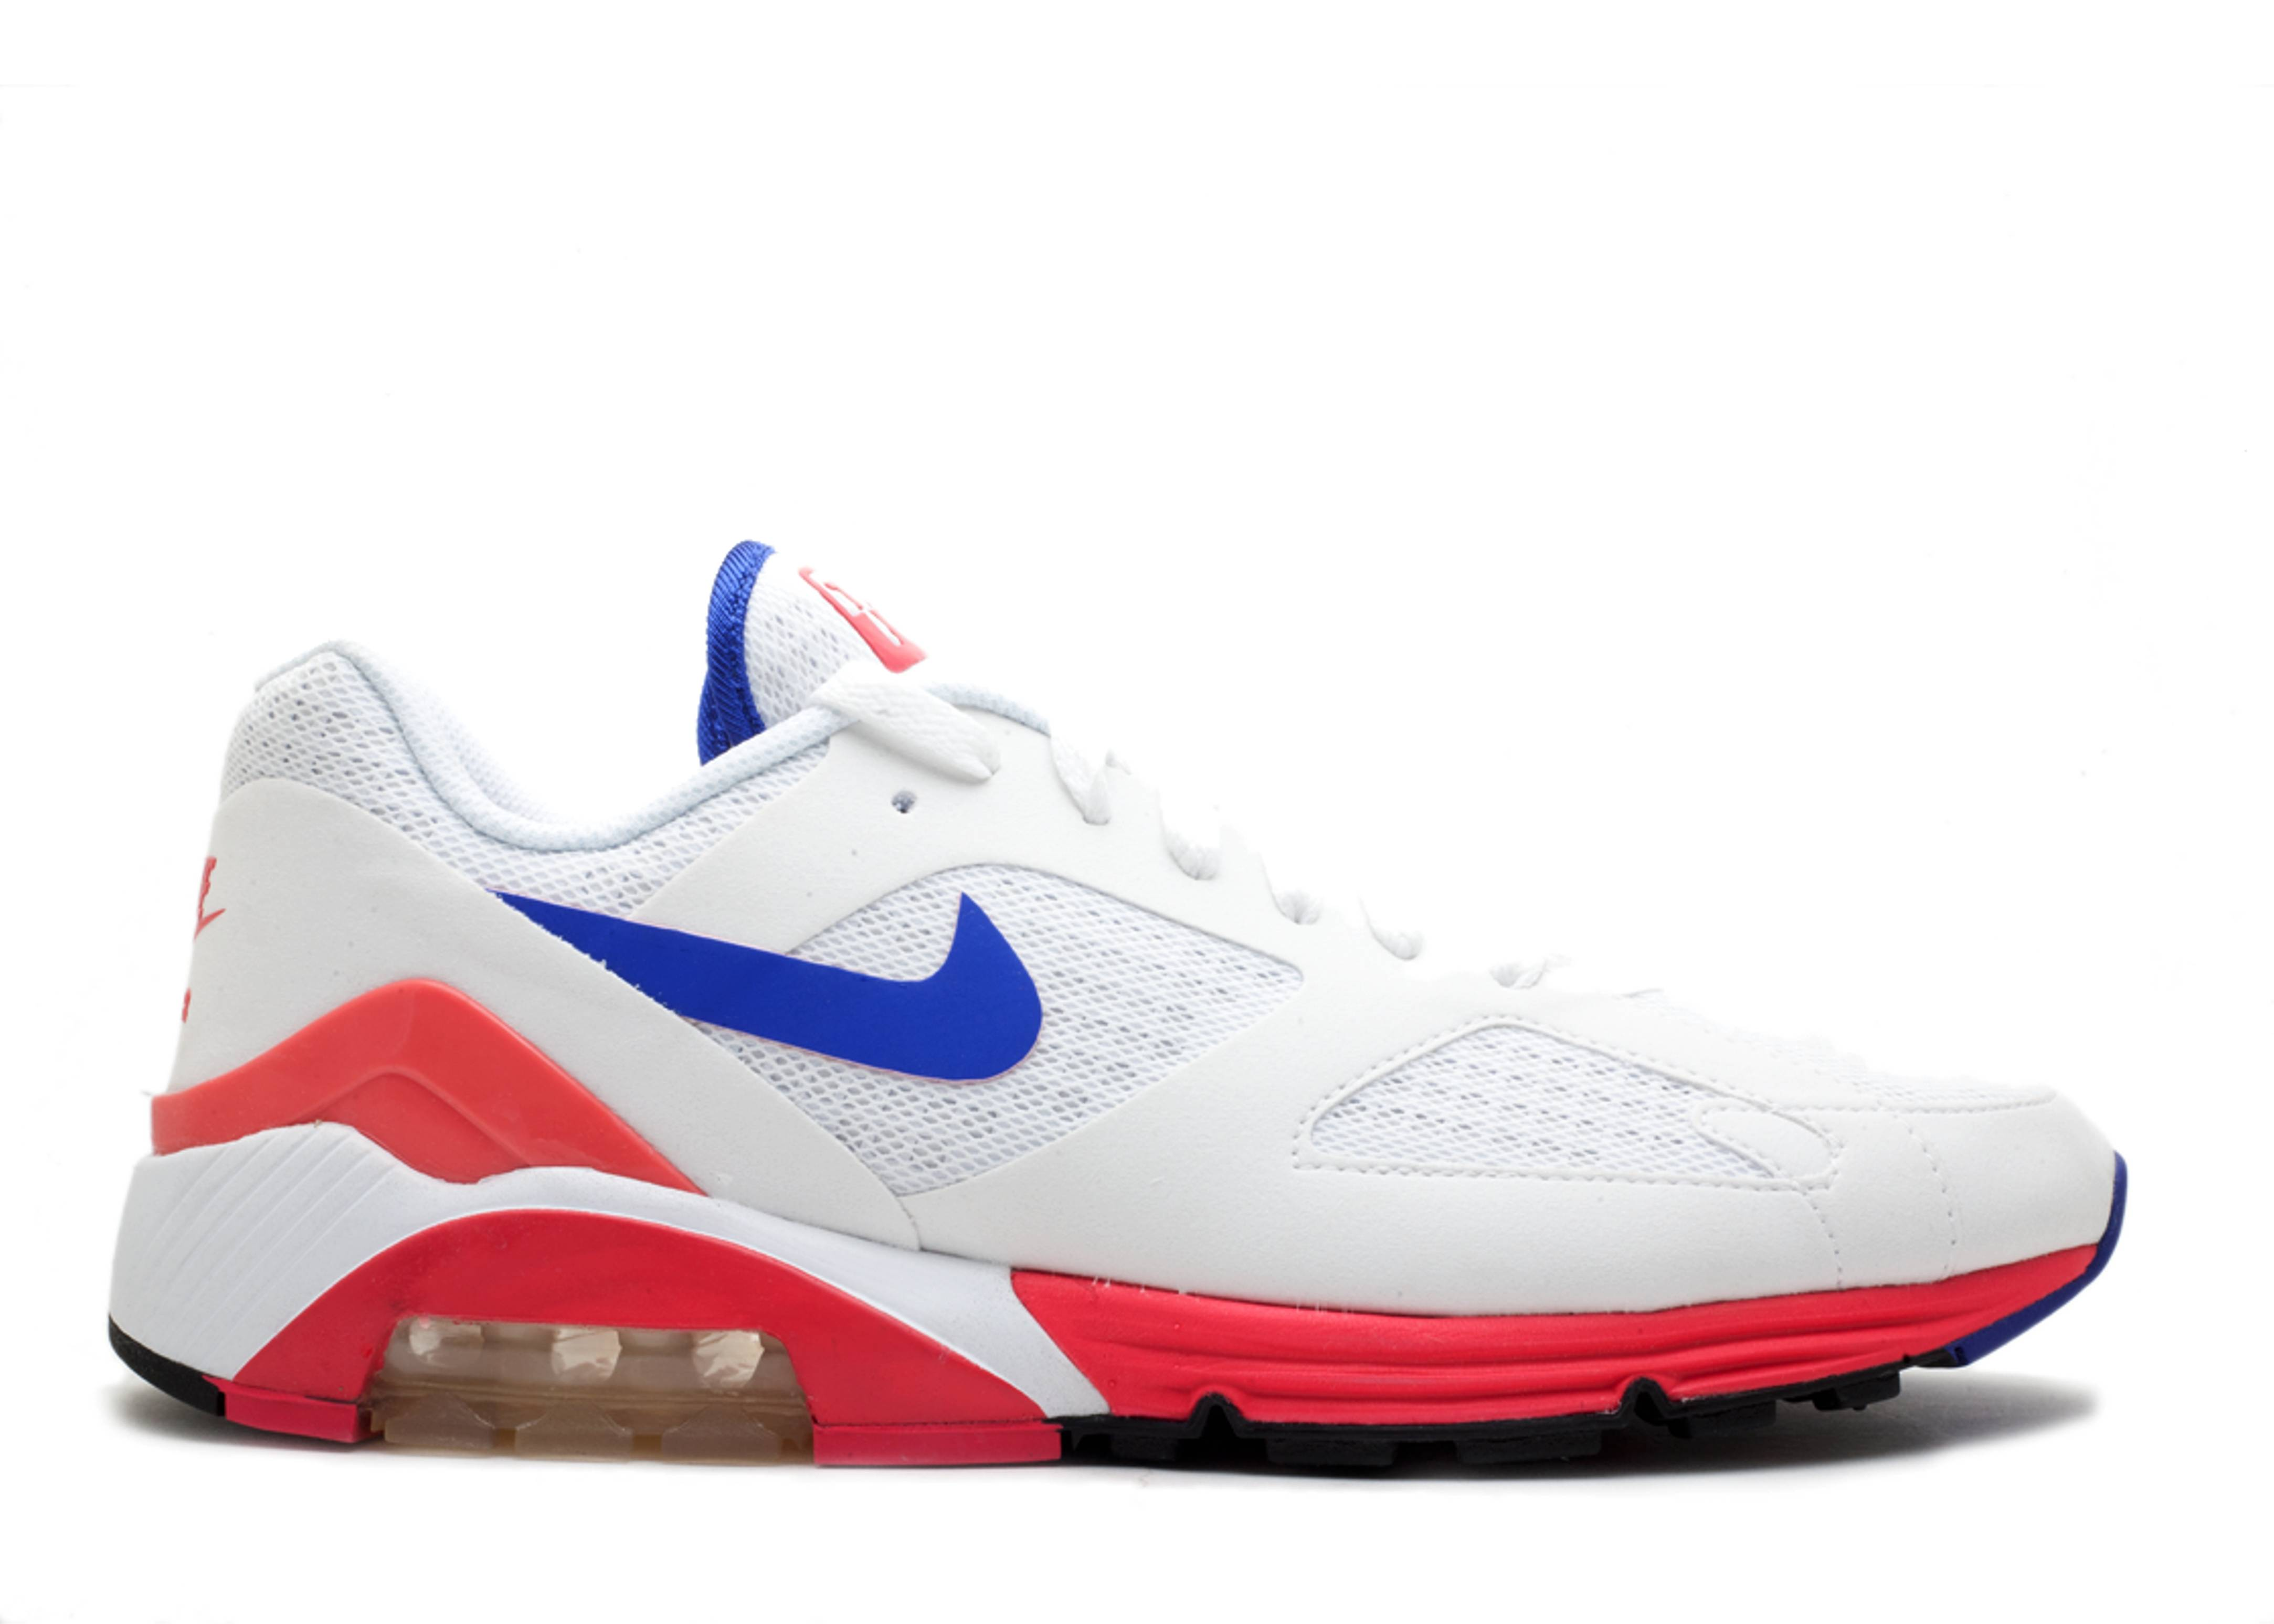 The Nike Air Max 180 Ultramarine OG Review Classics From